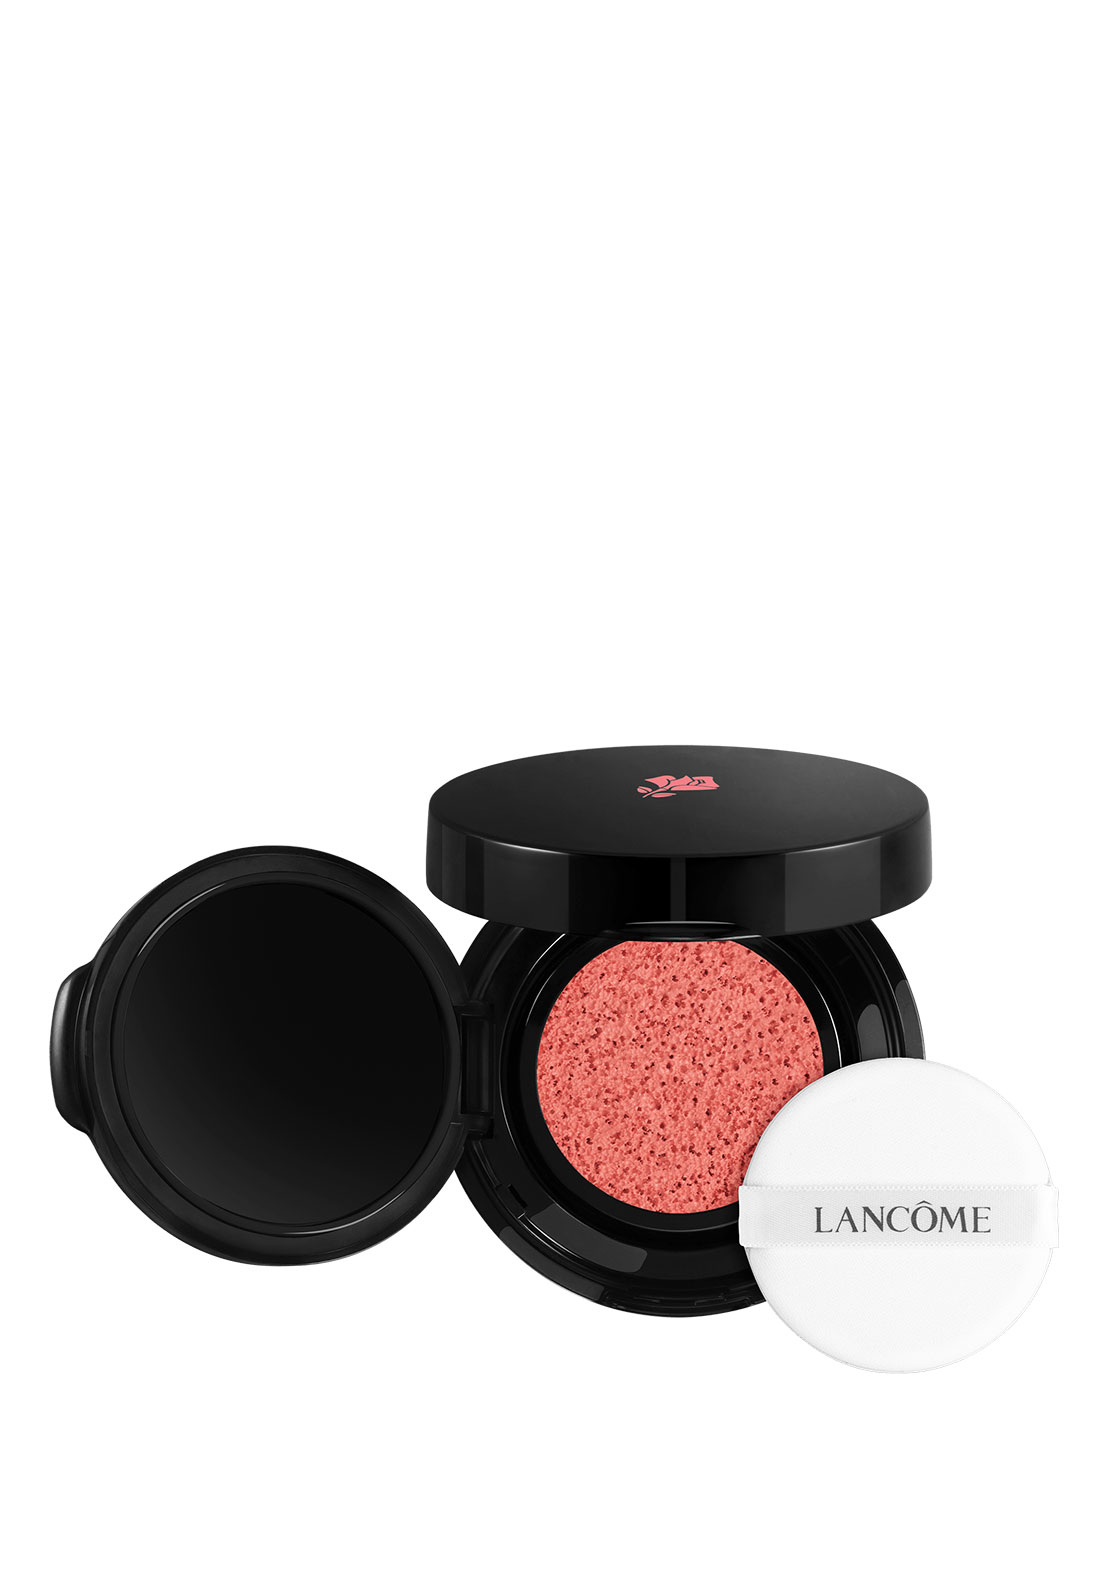 Lancome Cushion Blush Subtil Blusher, Rose Givree